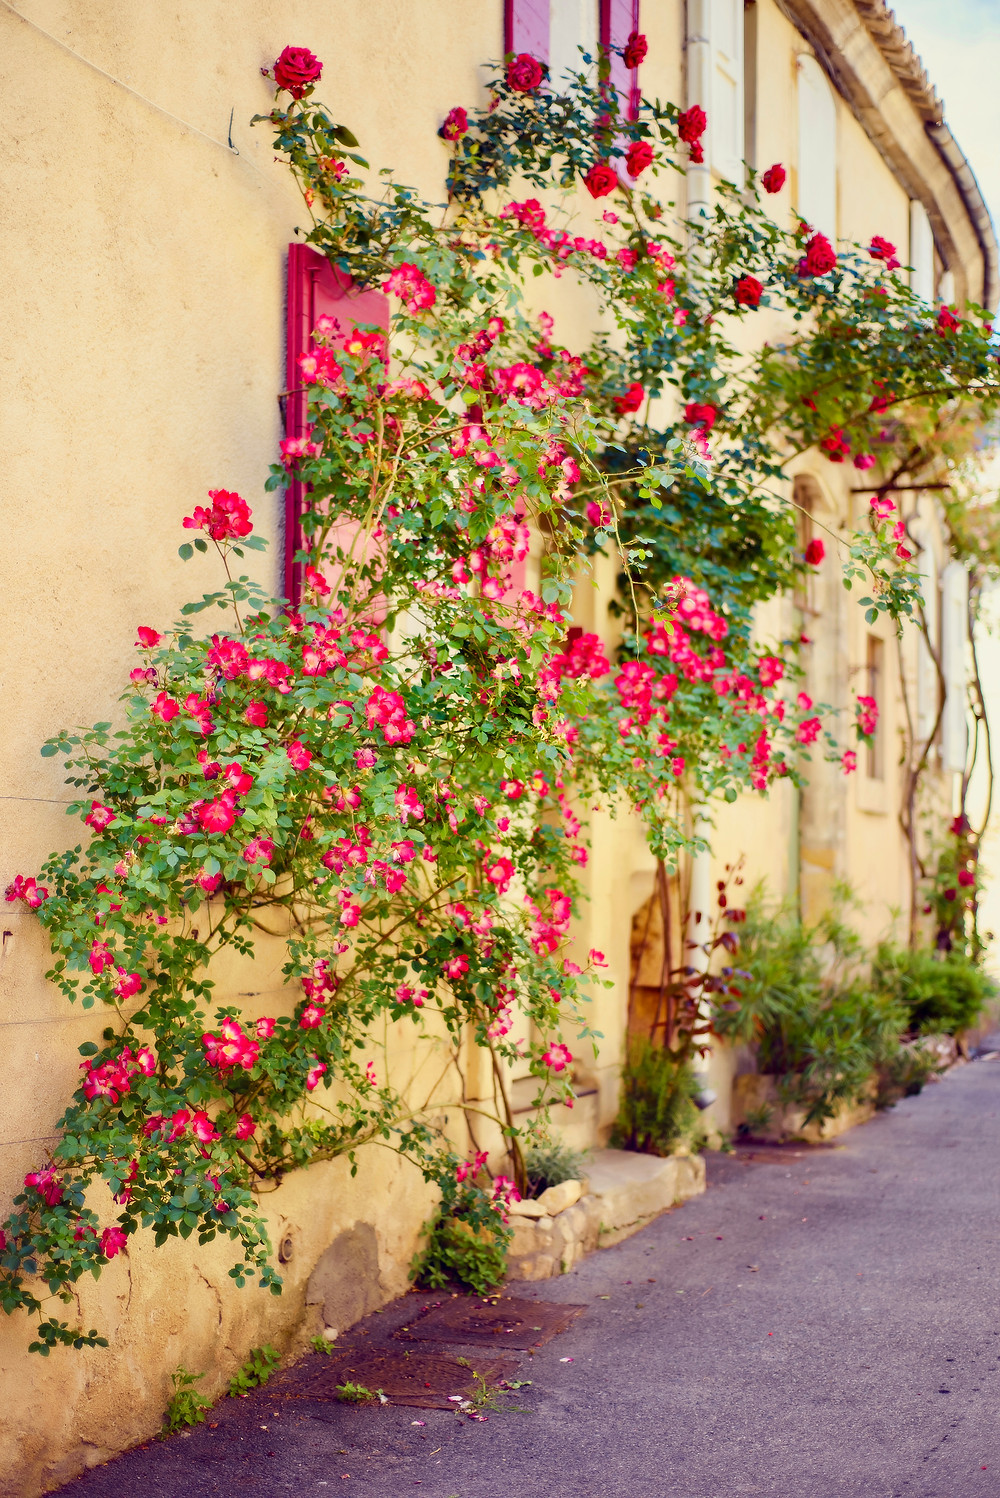 scenic stone medieval street with flowers on wall in Lourmarin